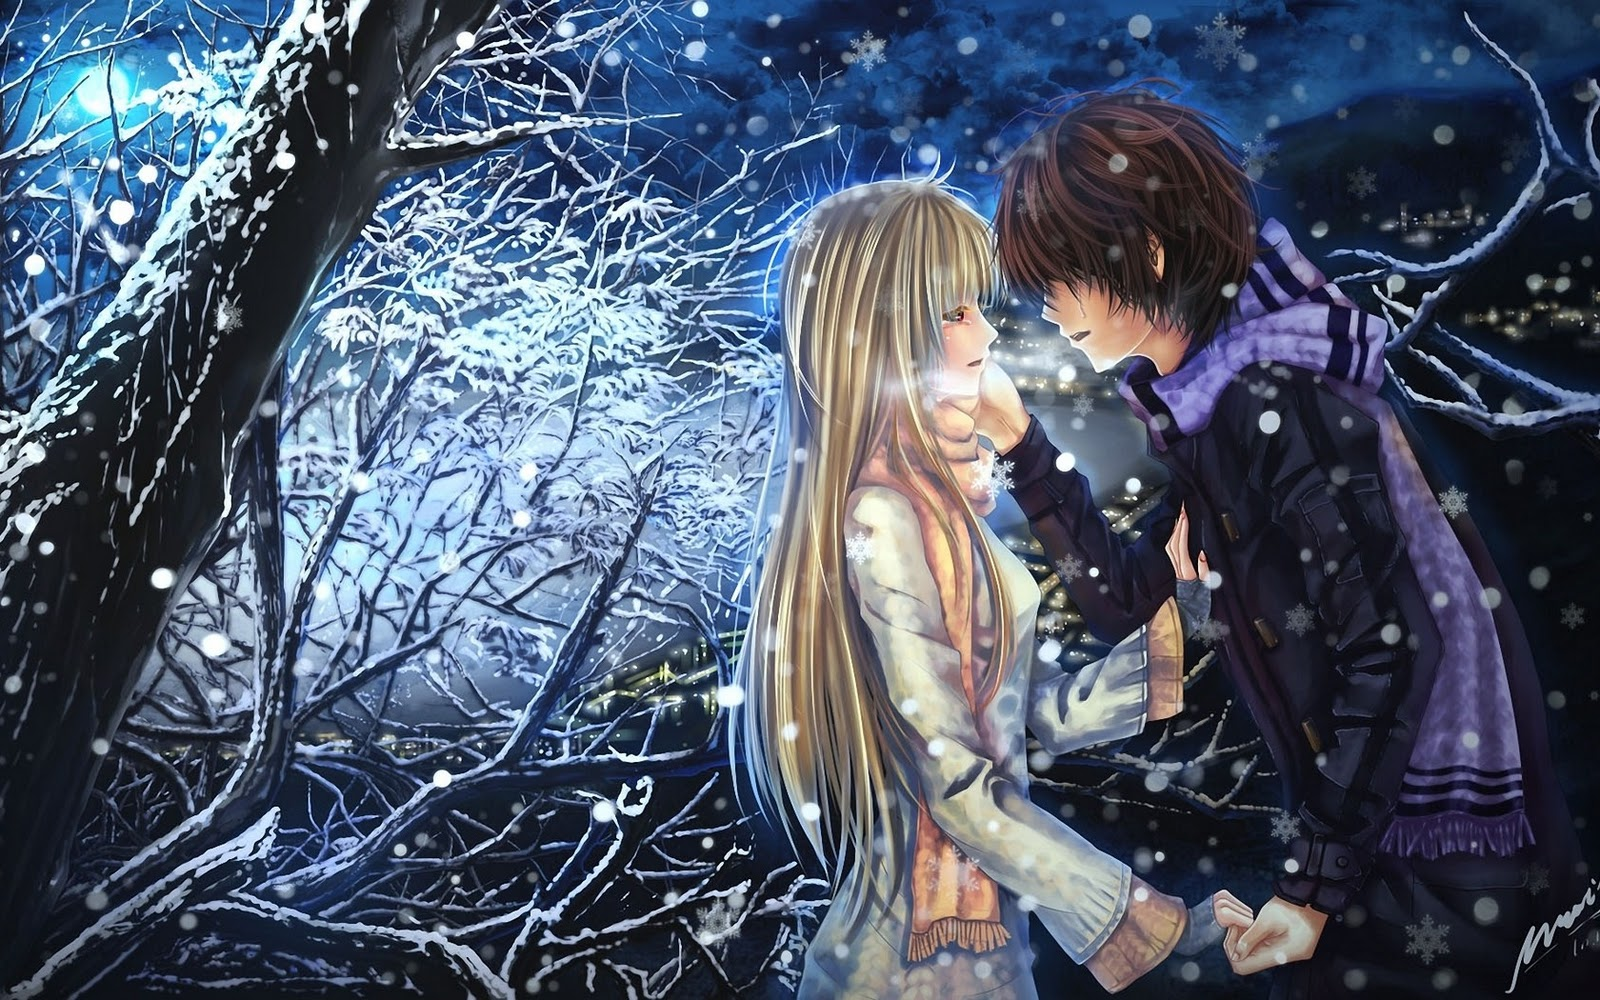 Animated Love couple Hd Wallpaper : A2Z Wallpapers: Anime couples In Love Wallpapers